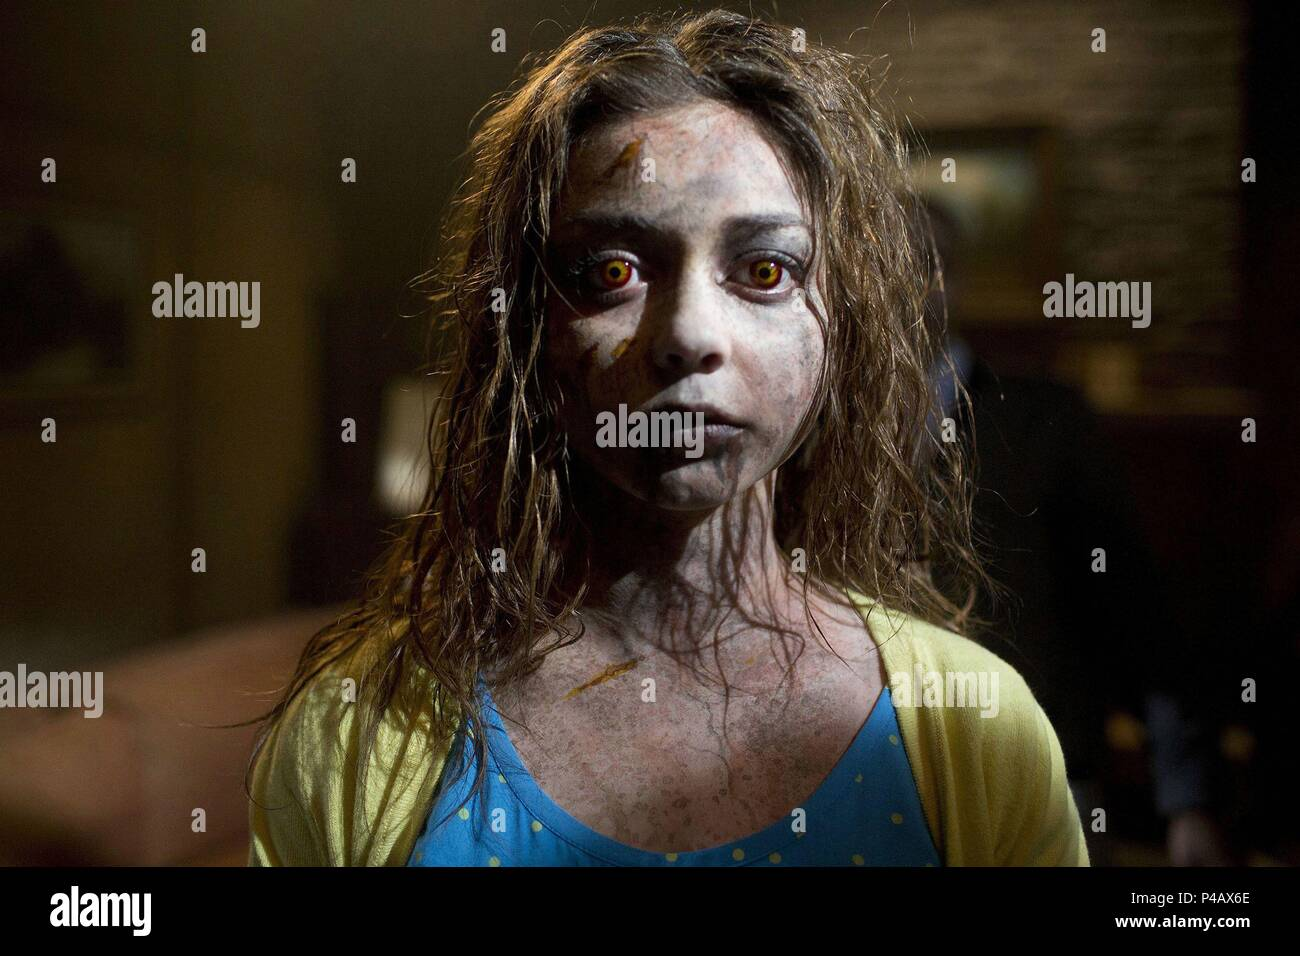 Scary Movie 5 High Resolution Stock Photography And Images Alamy